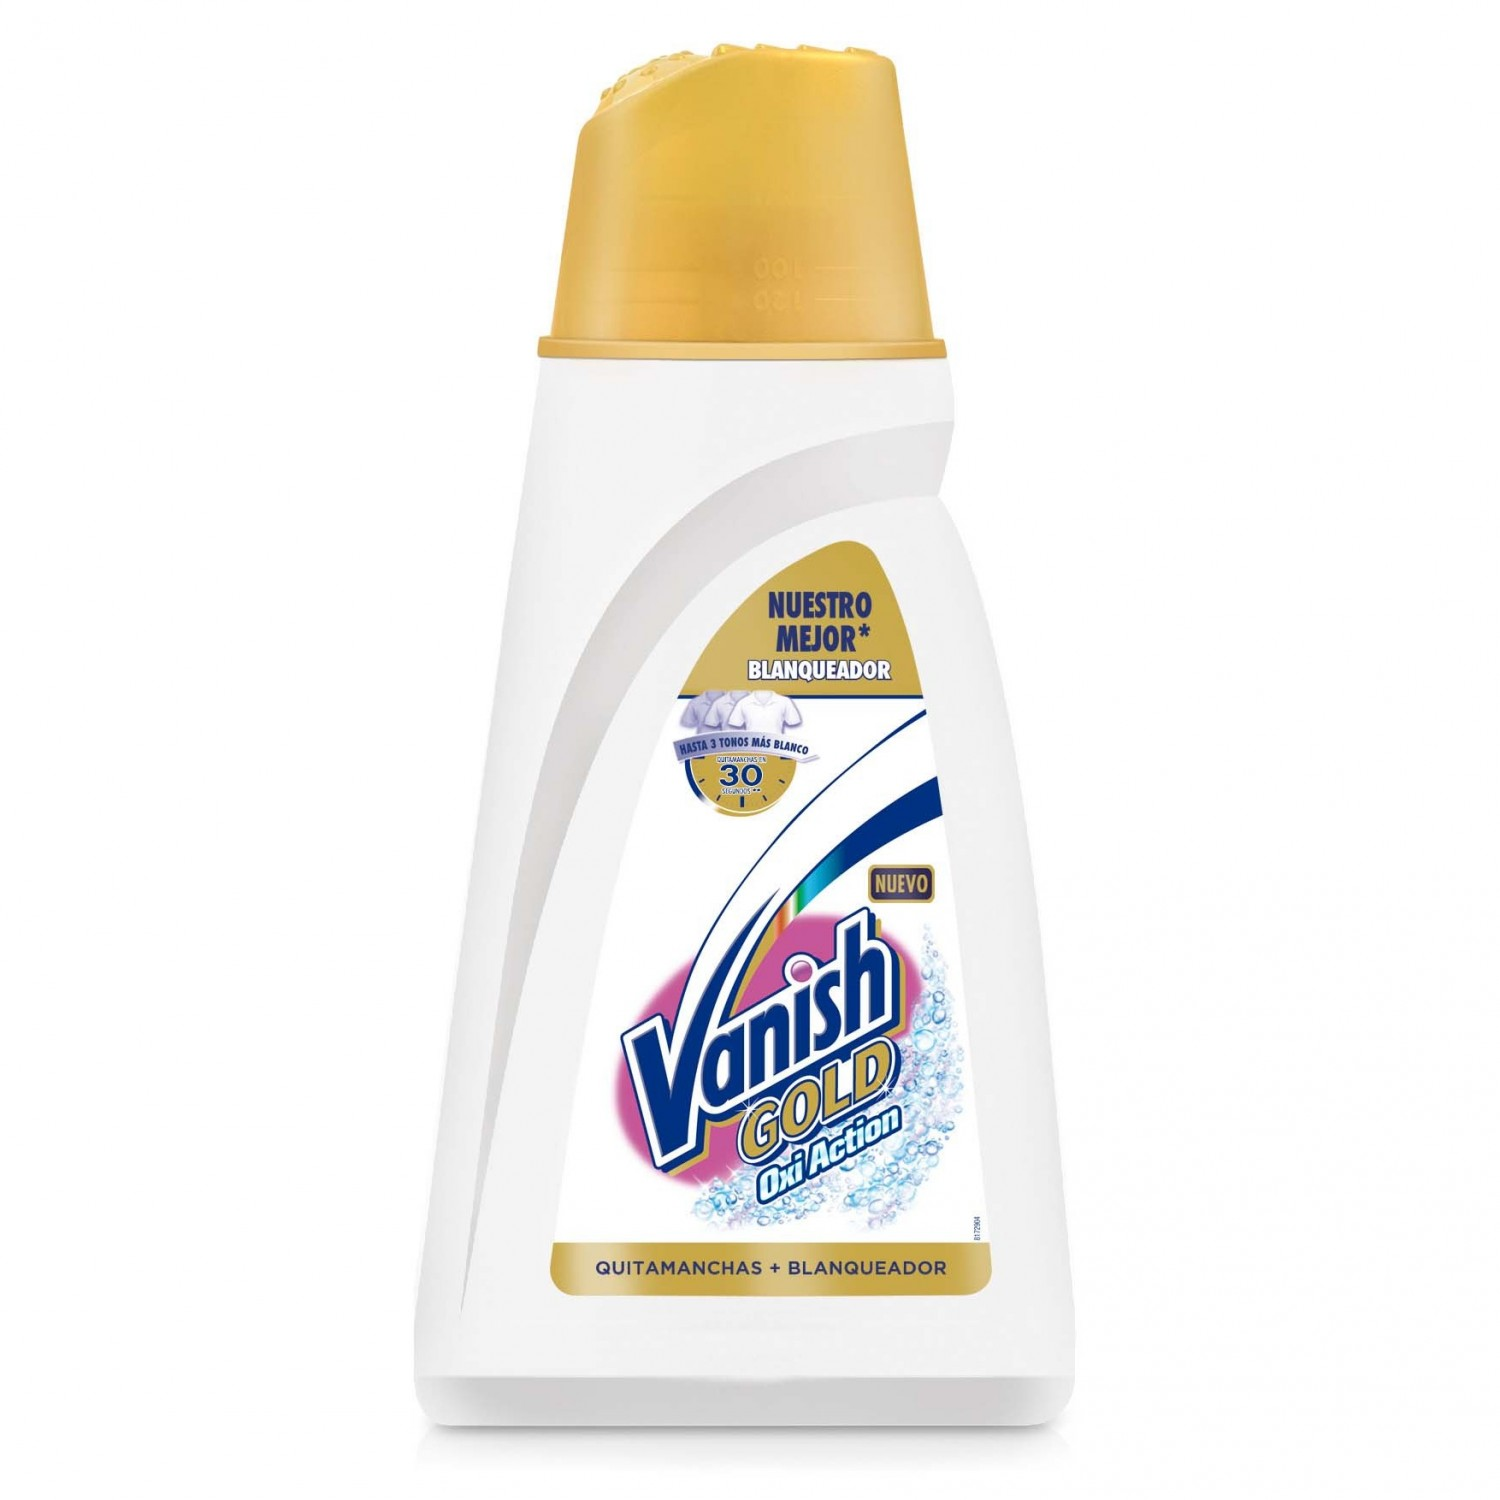 Vanish quitamanchas blanqueador gel gold oxiaction de 94cl.